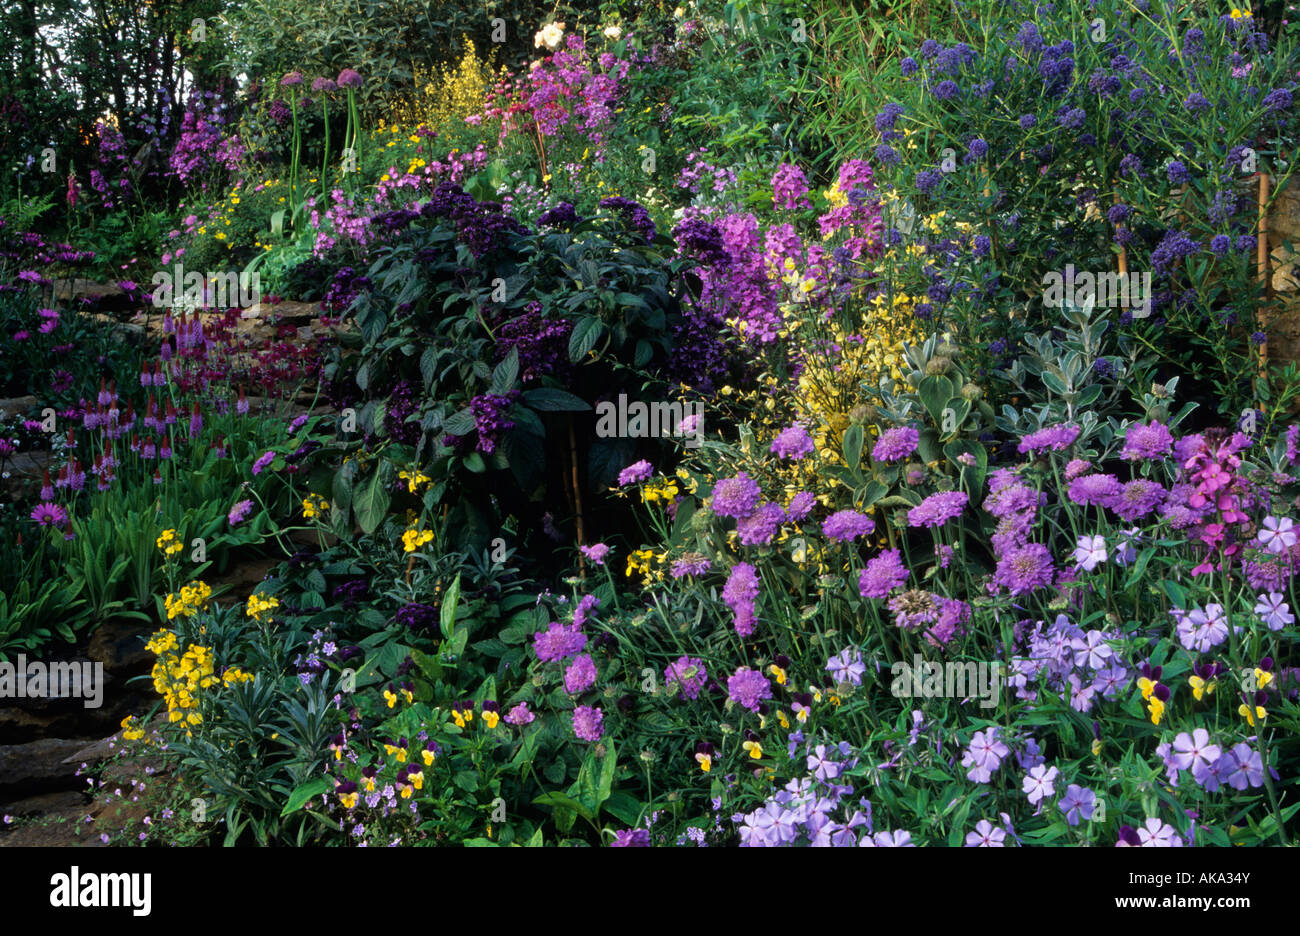 Butterfly Garden Design Marnie Hall Scabious Heliotrope Phlox   Stock Image